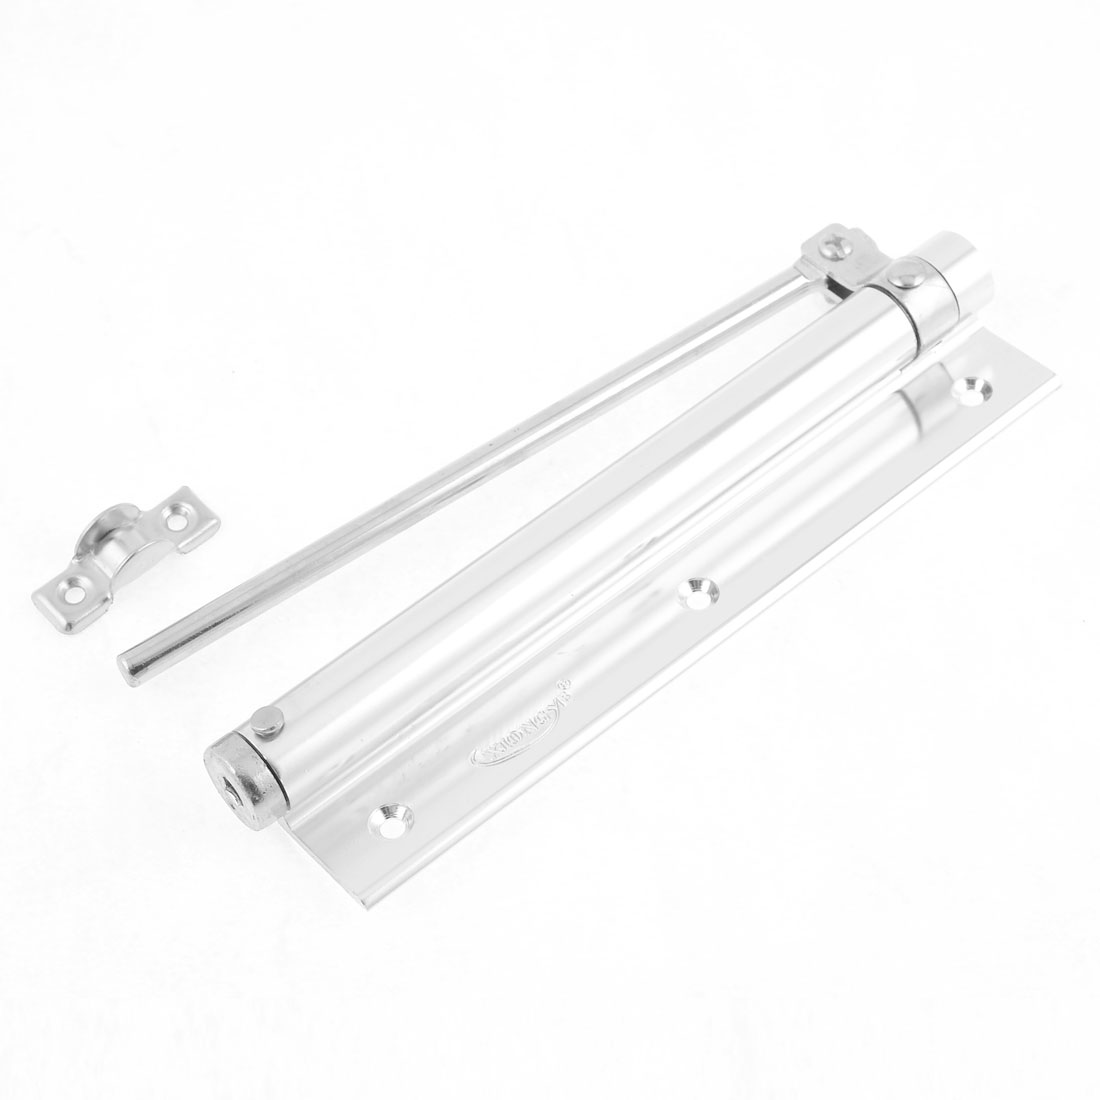 "Replacement 7.3"" Length Aluminum Alloy Automatic Door Closer"